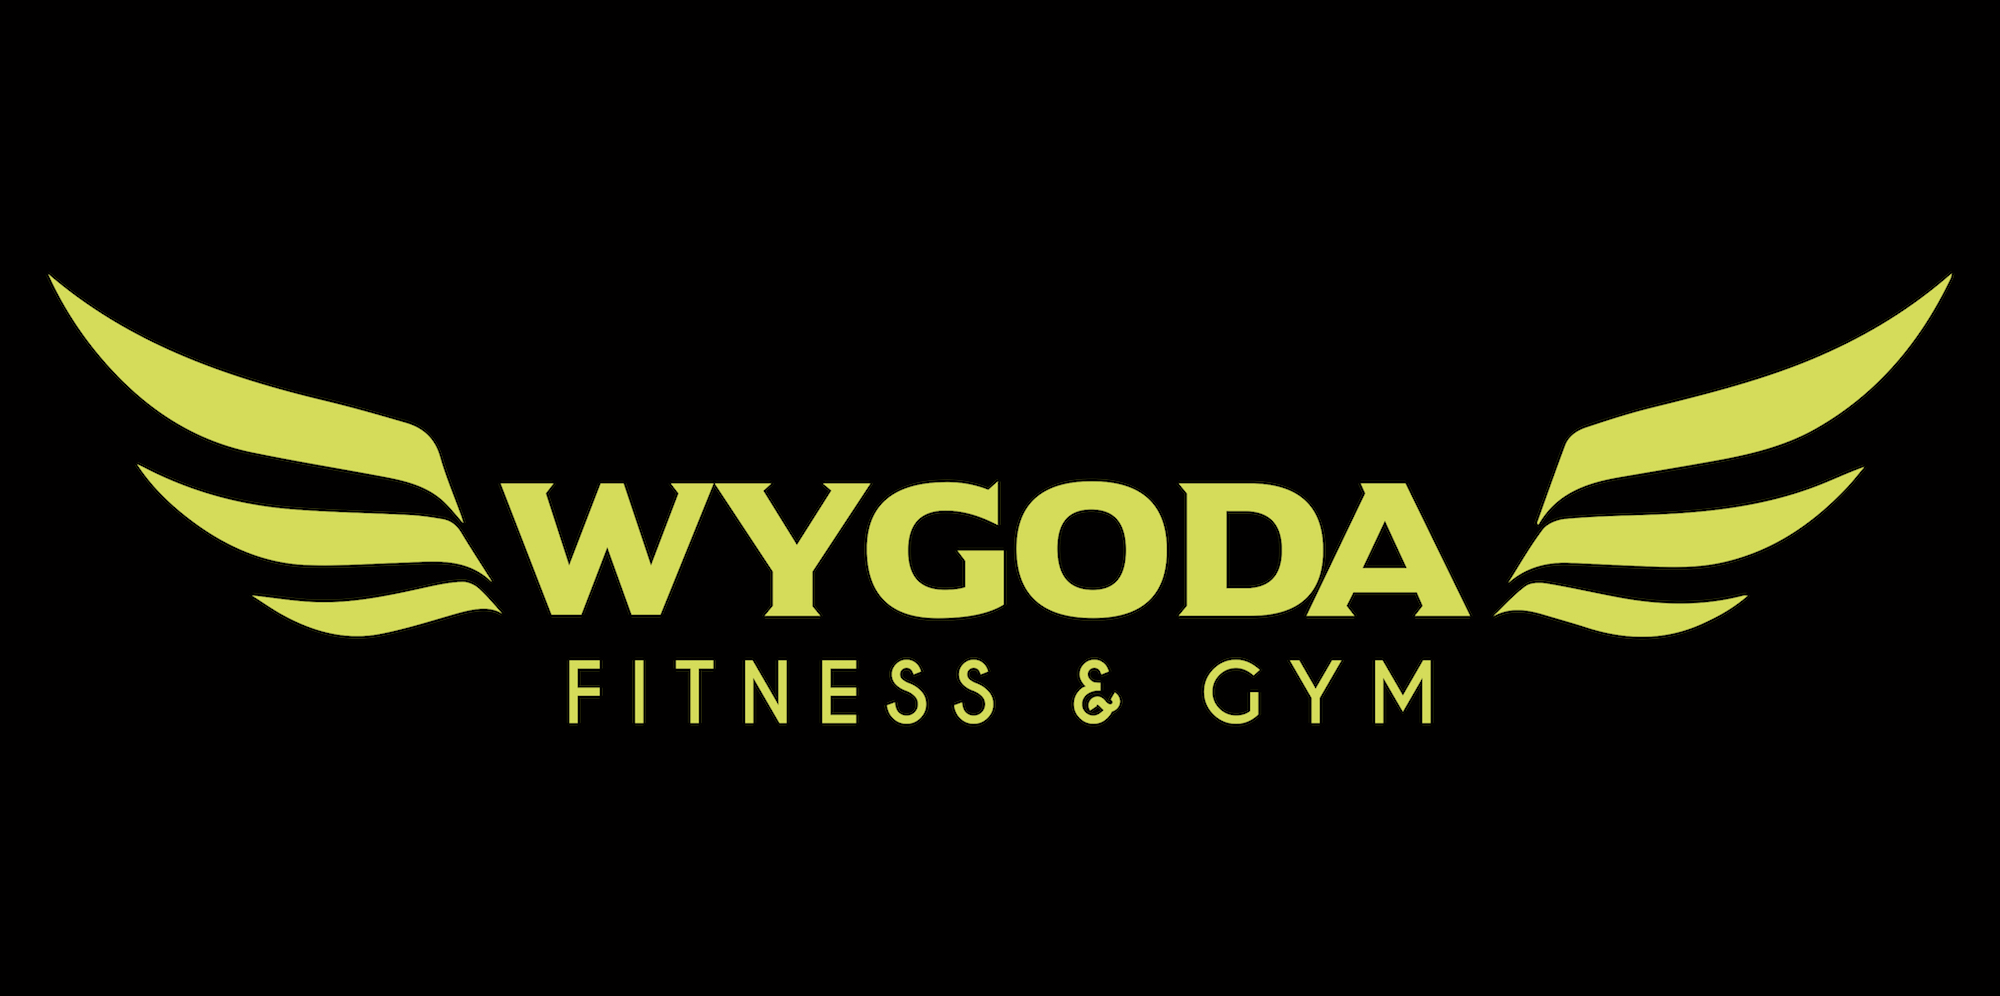 Wygoda Fitness Club